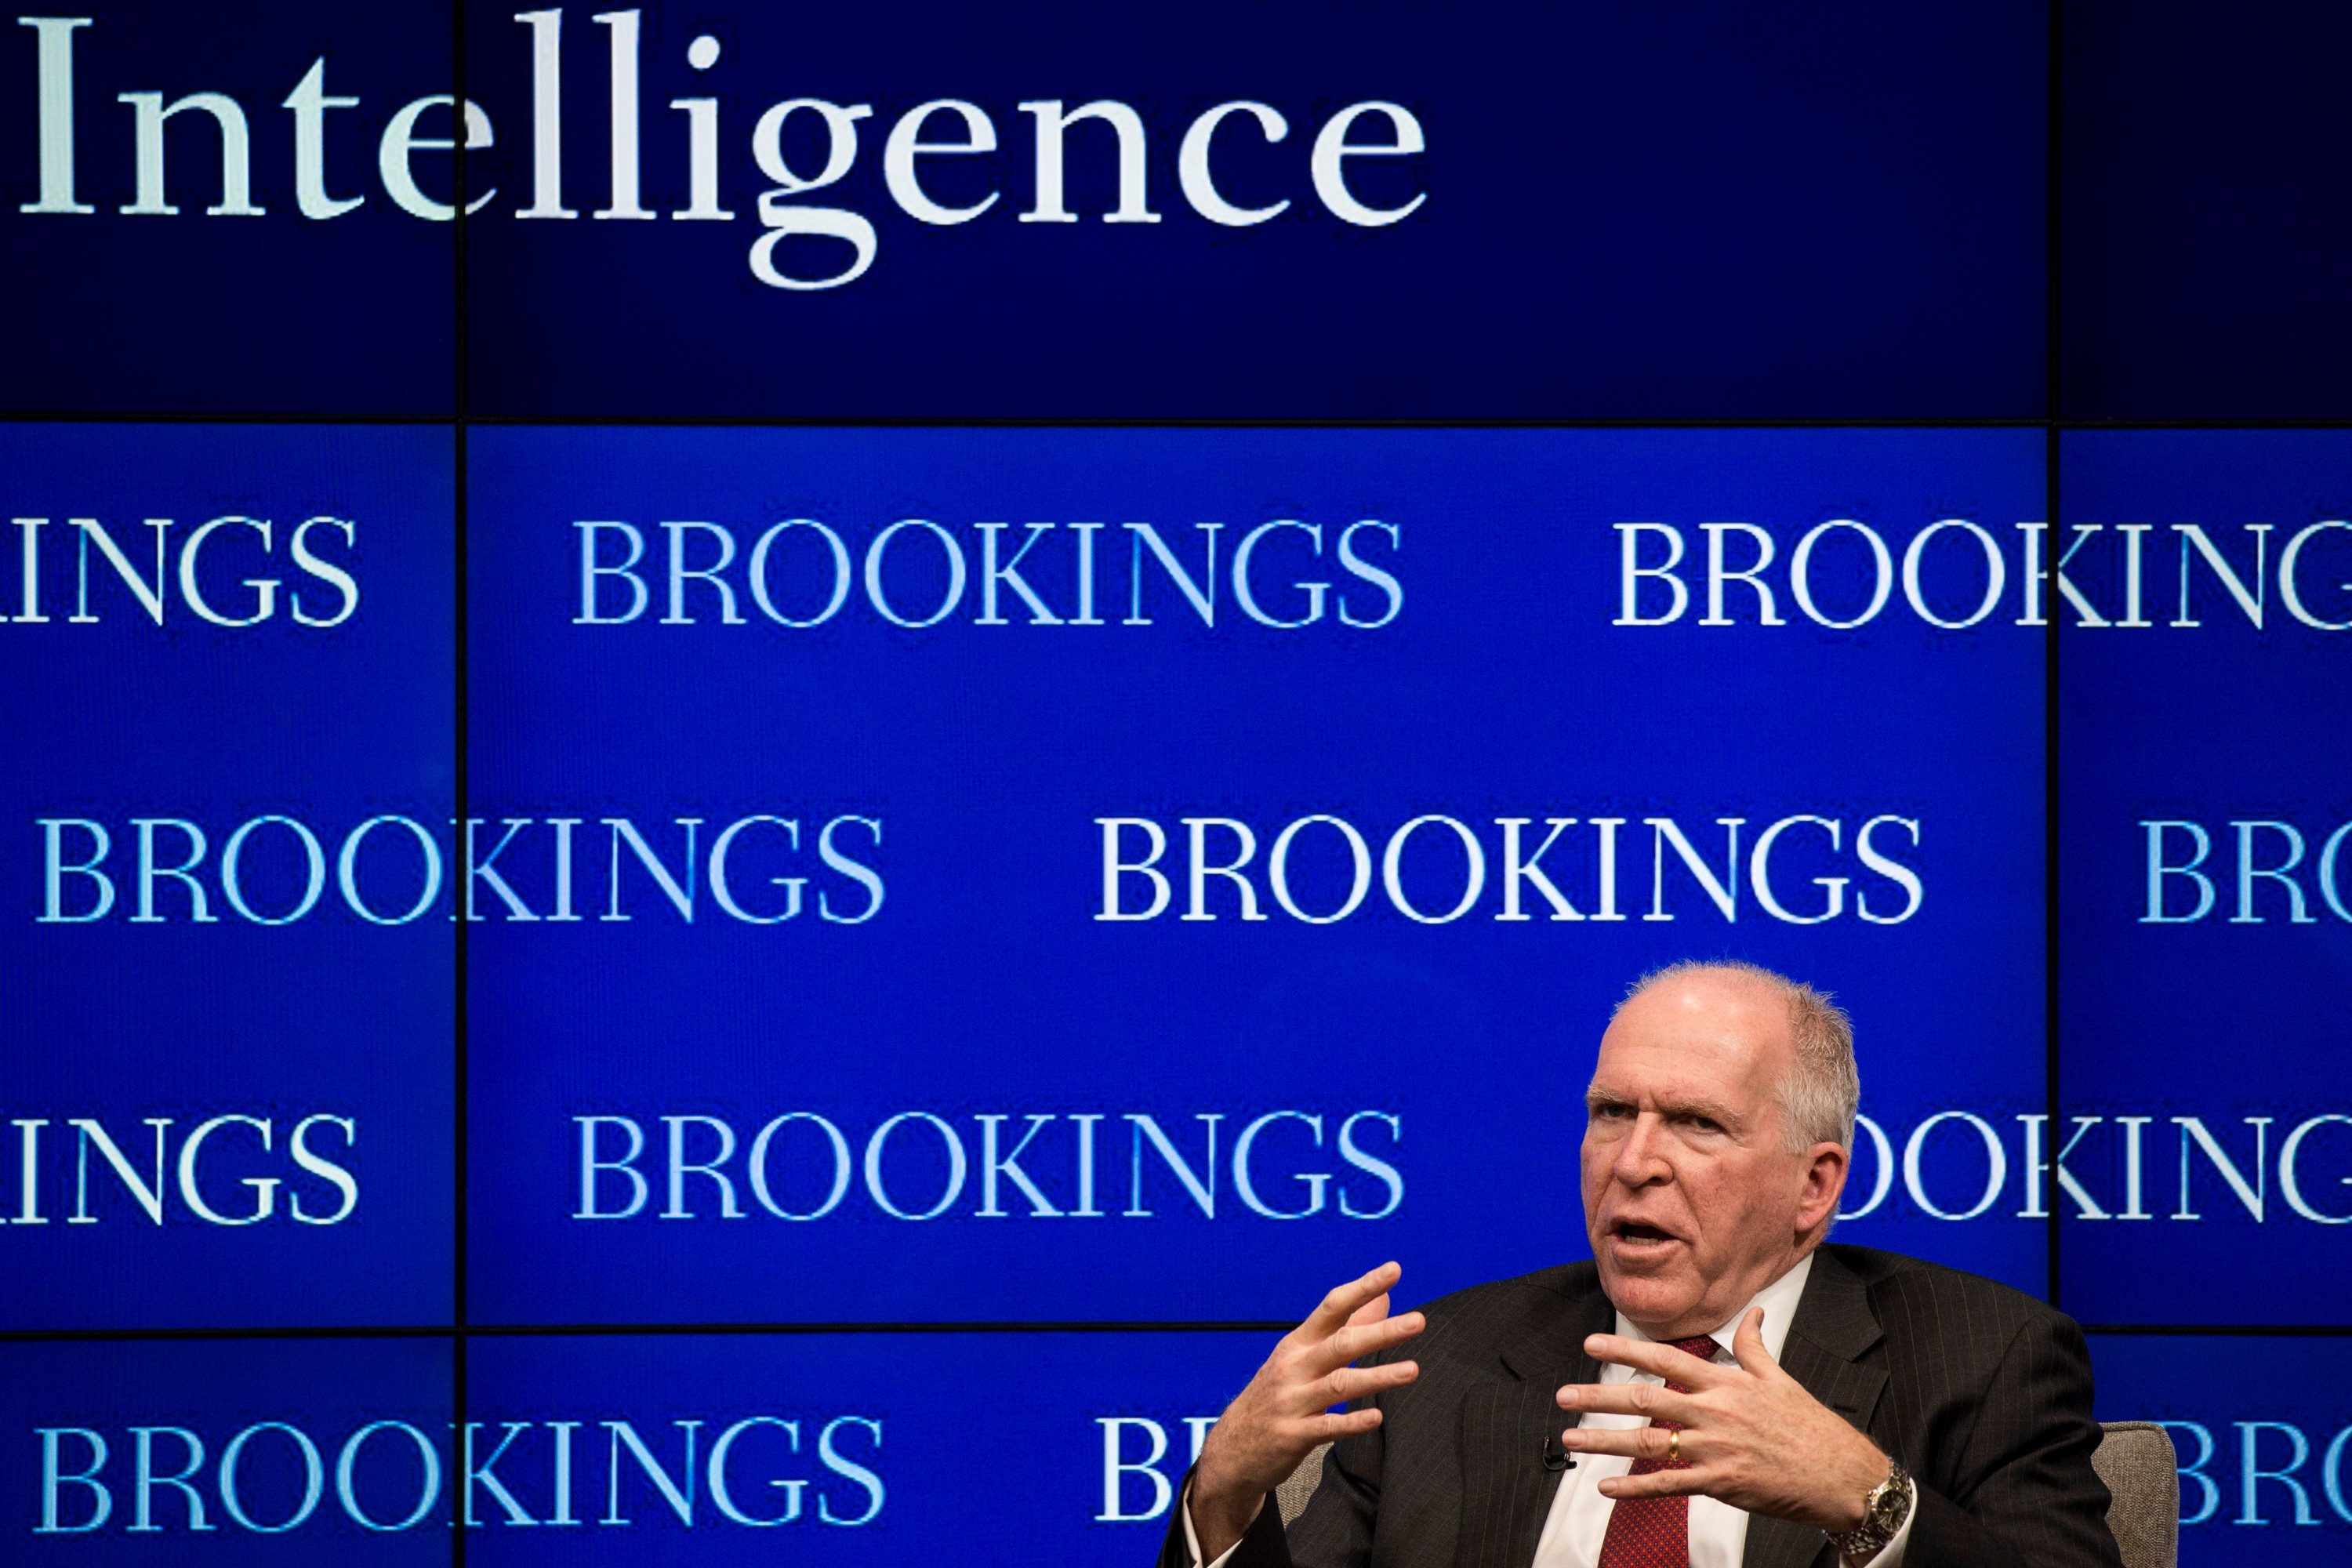 CIA Director John Brennan at the Brookings Institution